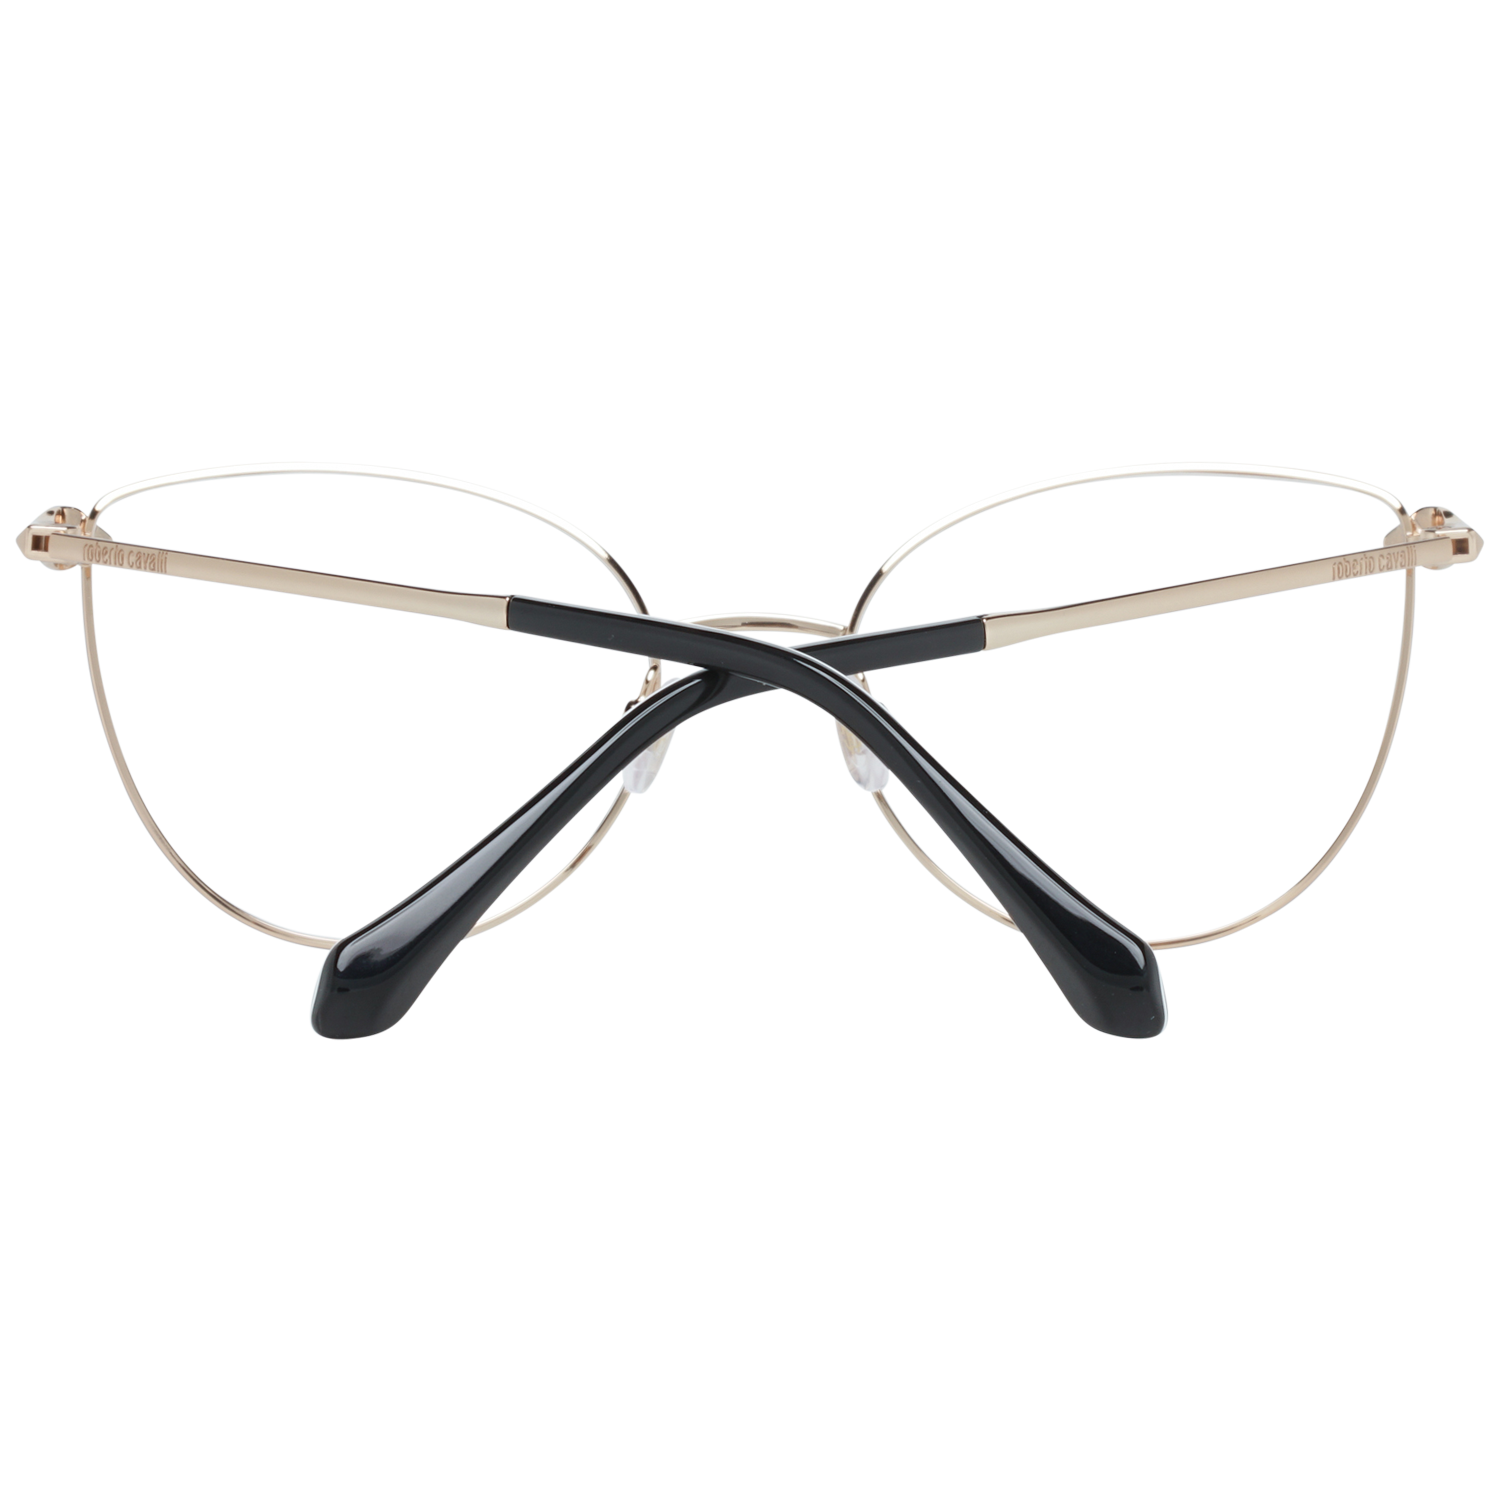 Roberto Cavalli Optical Frame RC5065 028 55 Women Gold